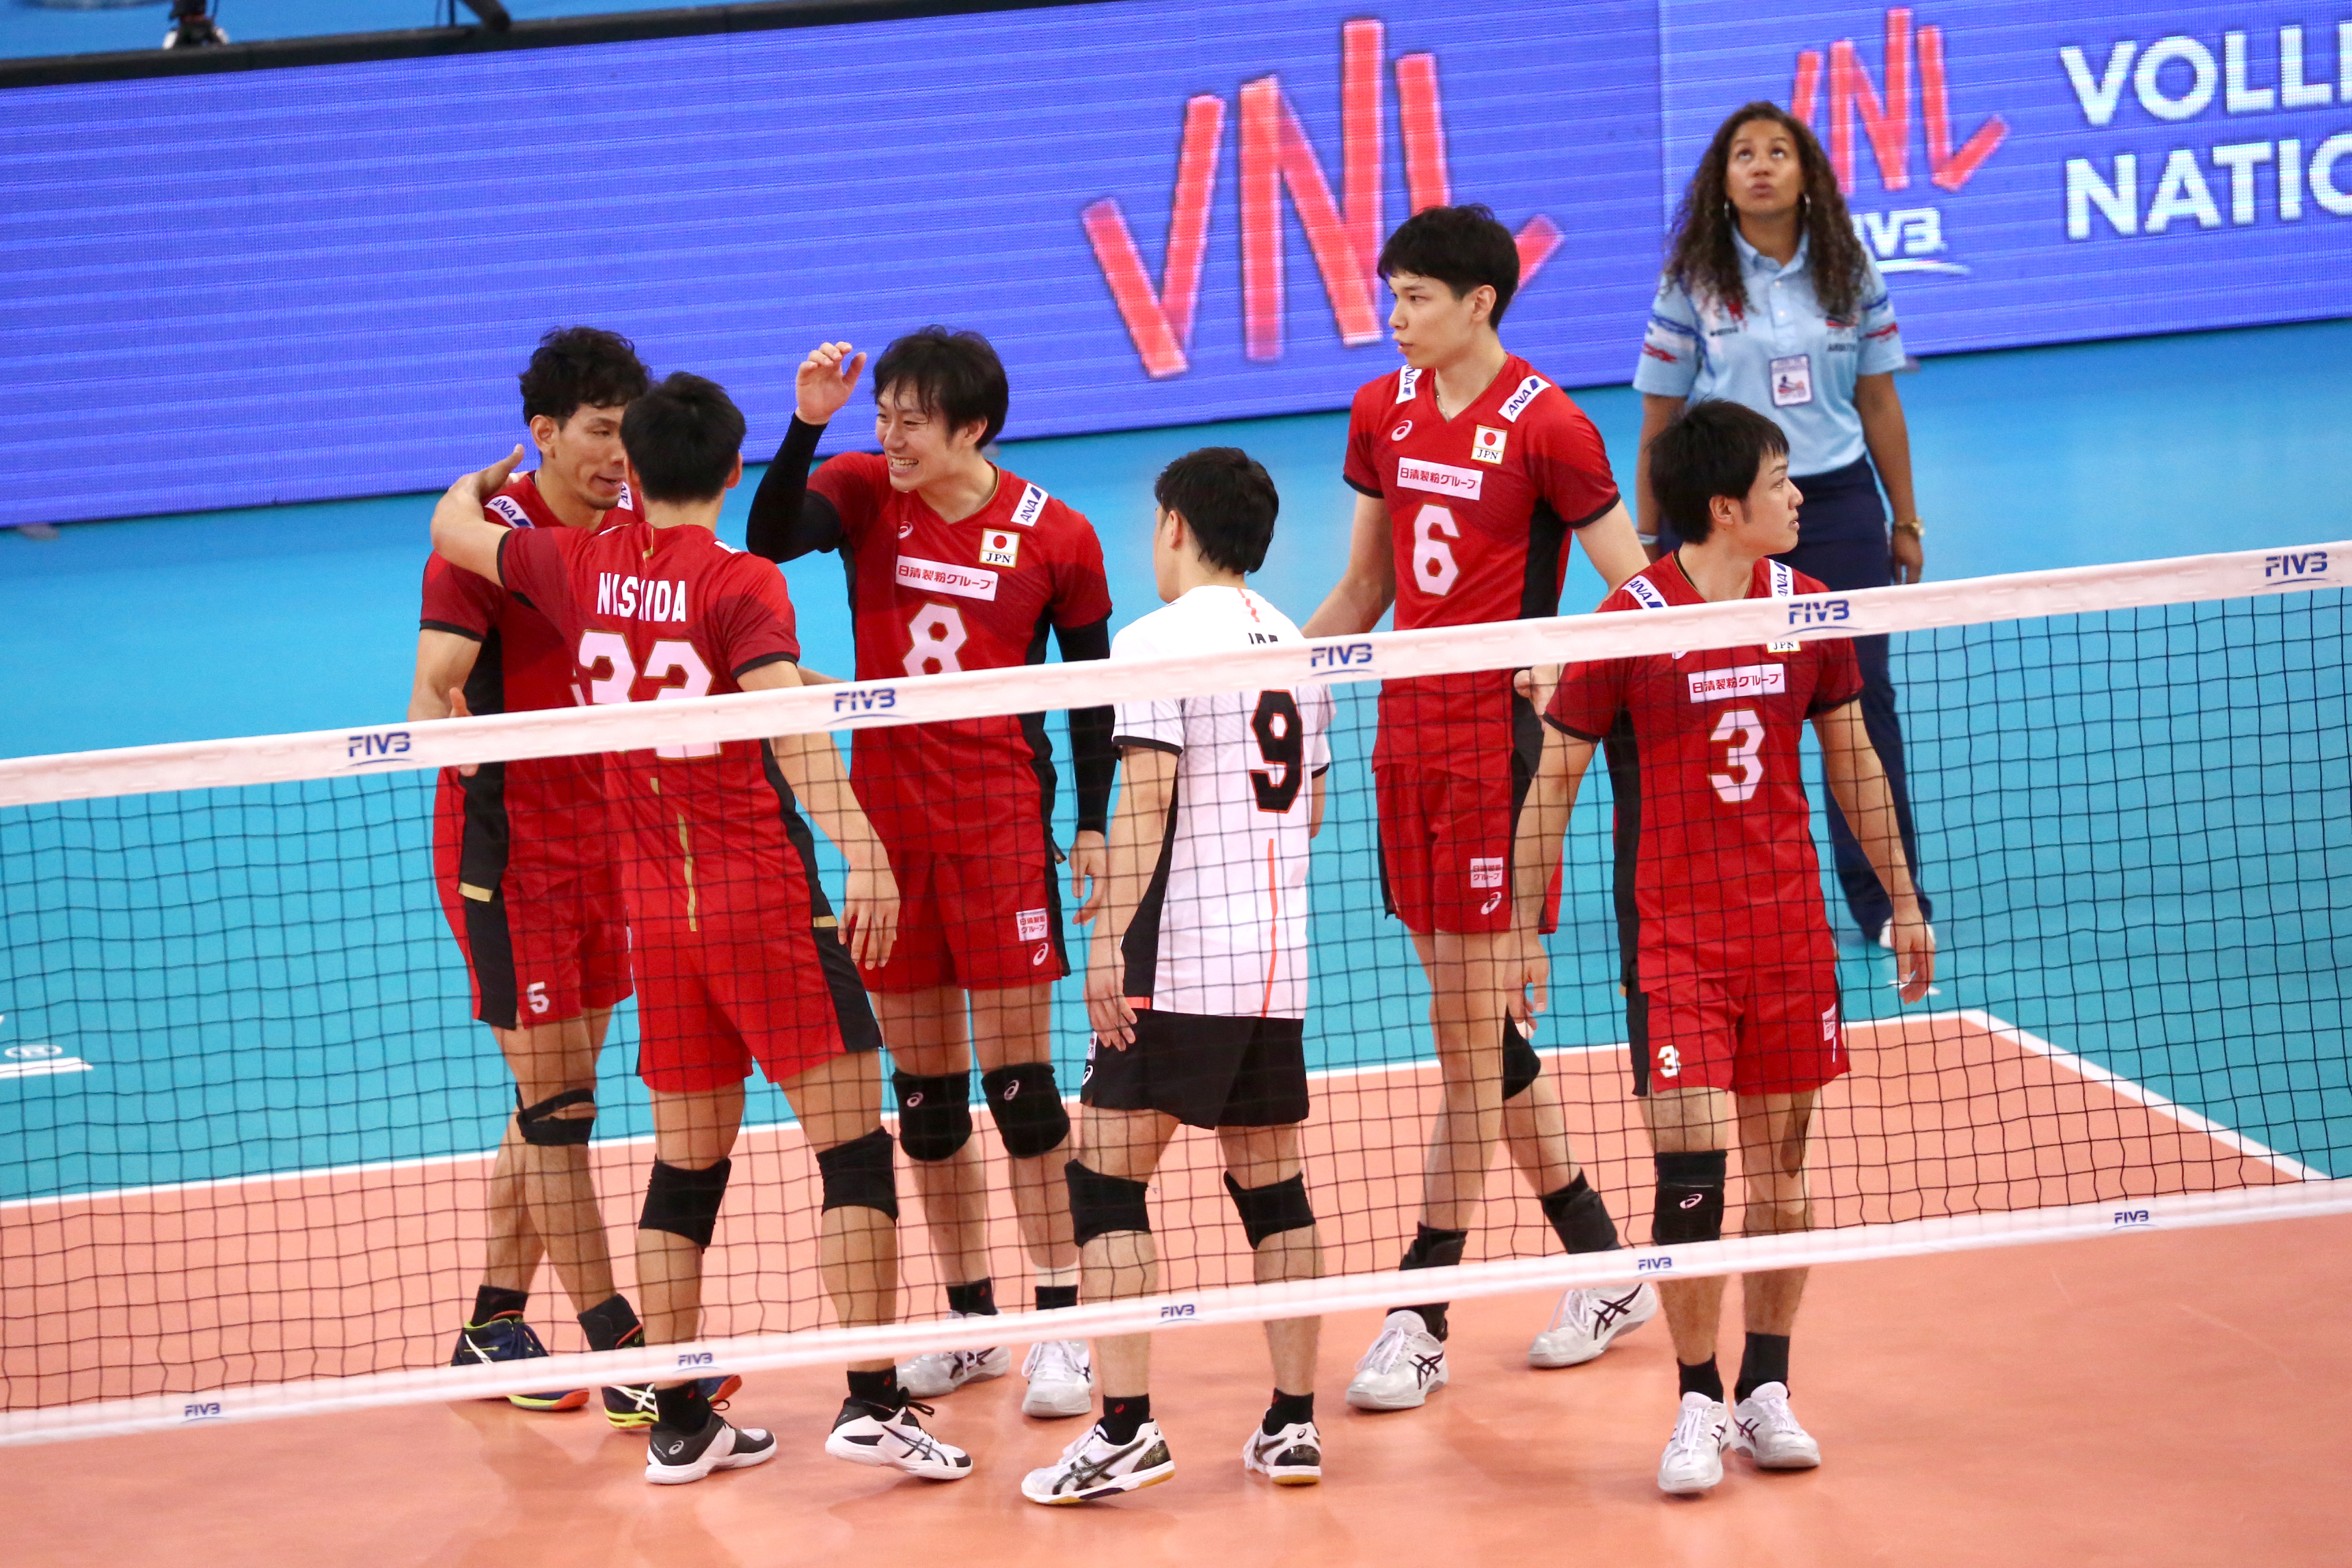 Fivb Men S Volleyball Nations League News Detail Finals Ri Reels In Australia As Japan Get Off The Mark Fivb Volleyball Nations League 2018